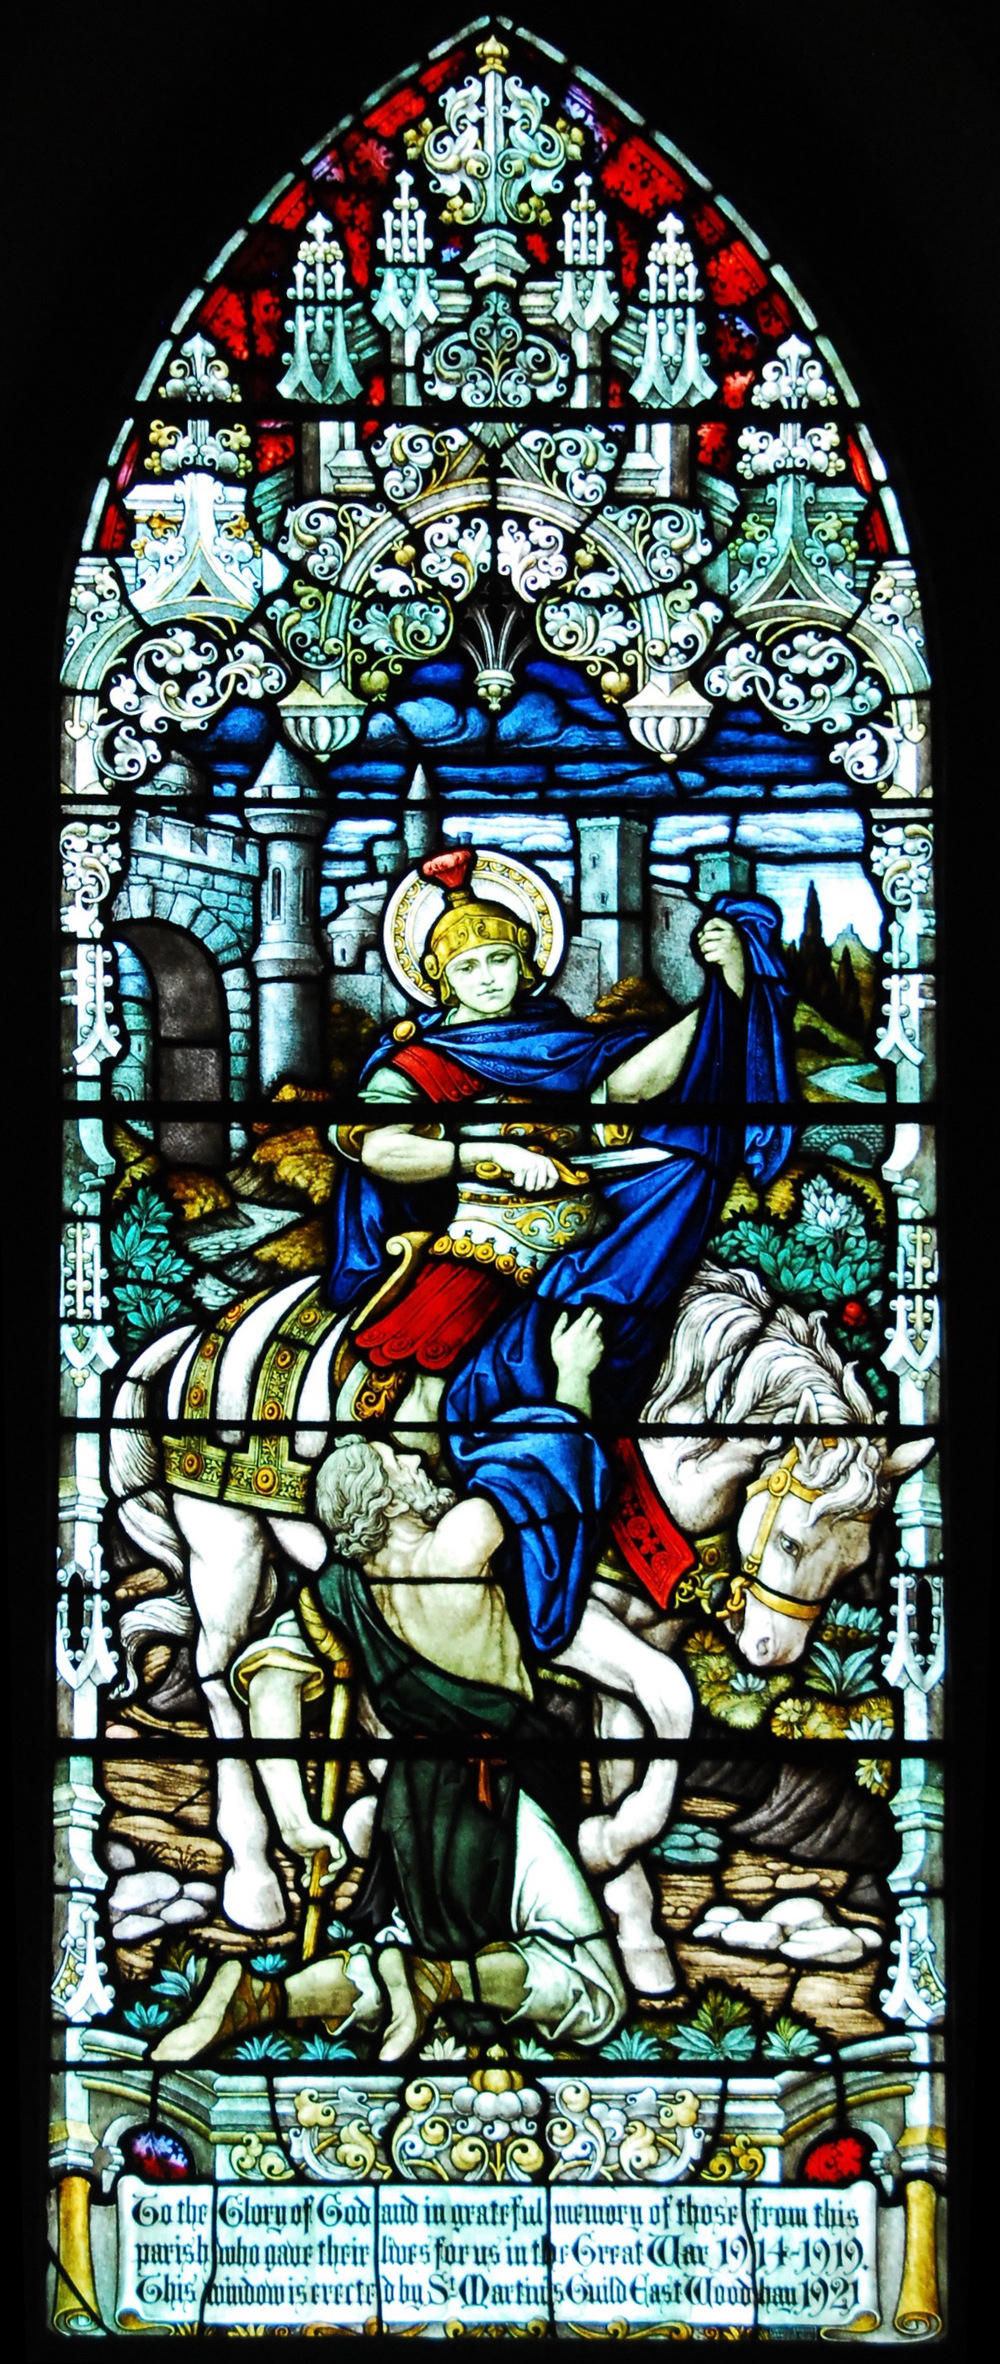 The St Martin's Guild Window